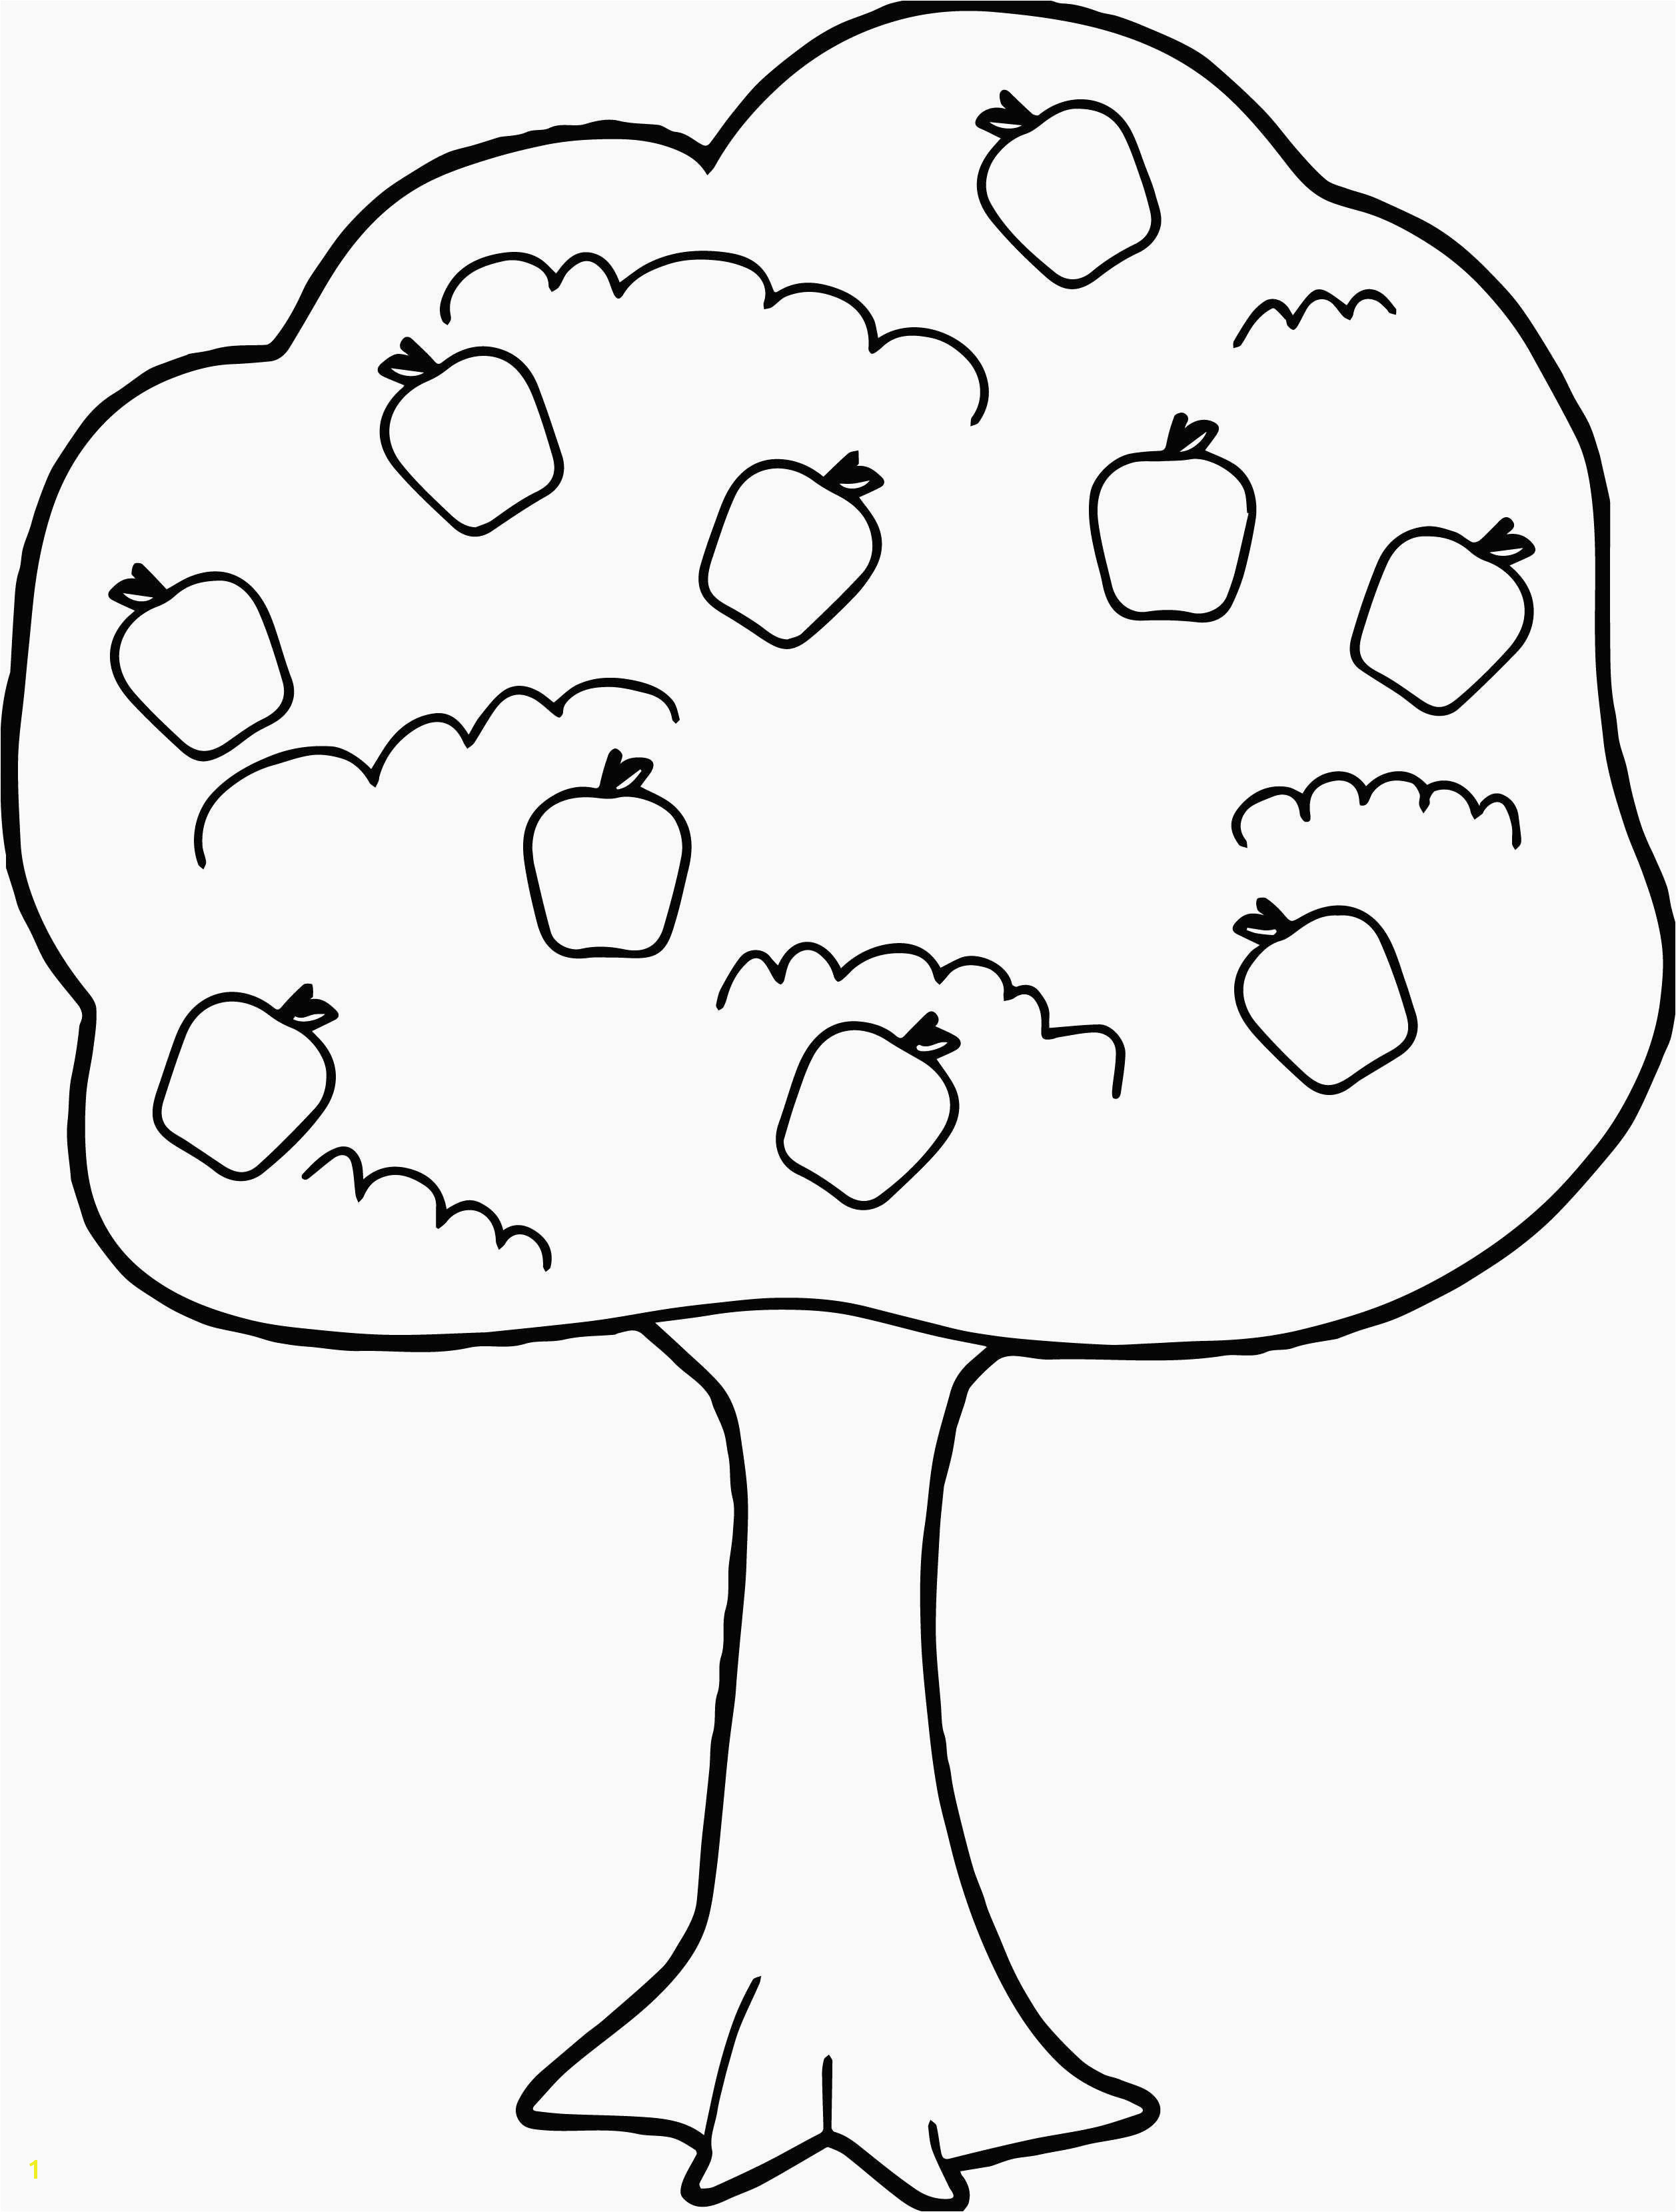 Preschool Coloring Pages Apple Tree Inspirational Printable Coloring Pages For Kids Luxury Printable Coloring 0d